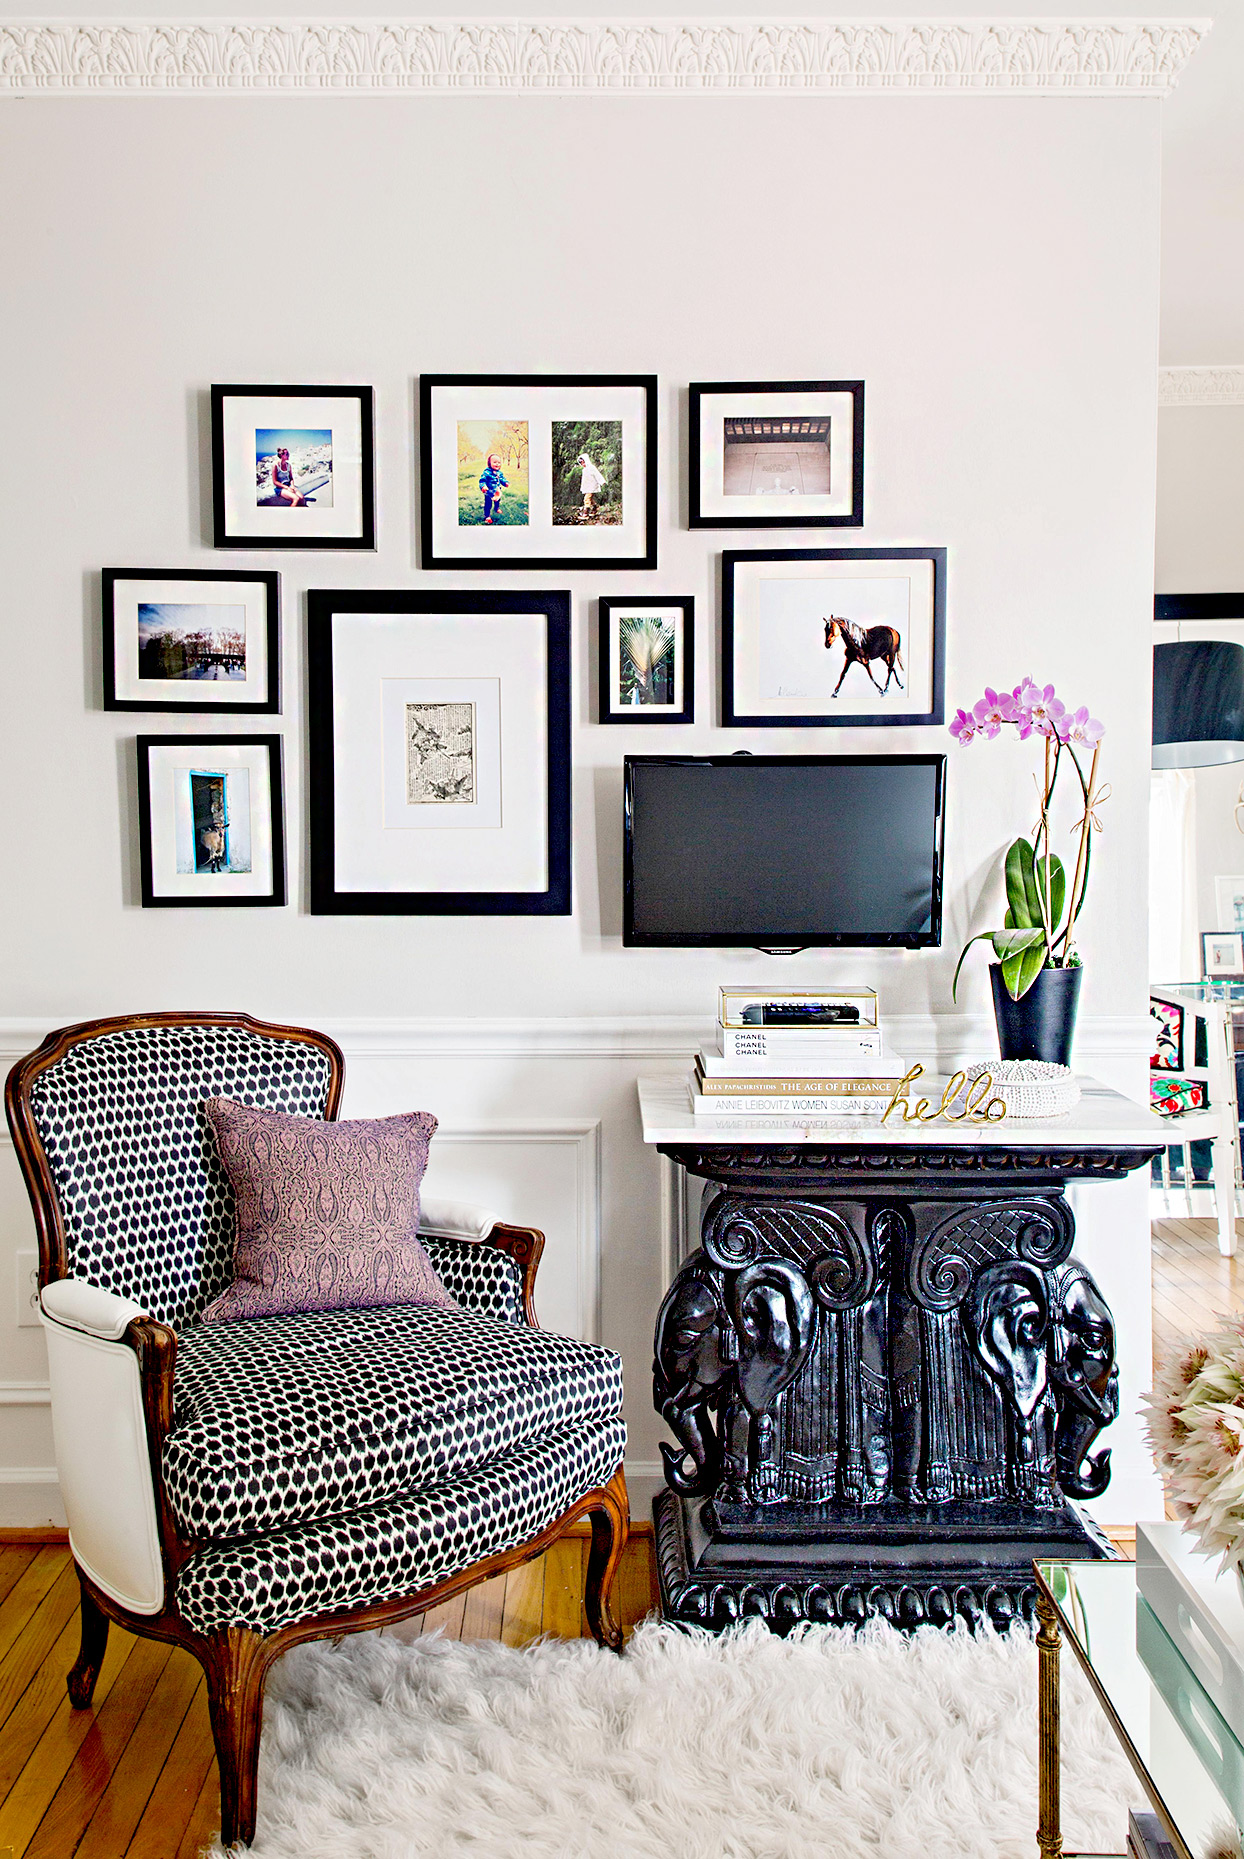 Sitting area with tv and framed artwork on wall